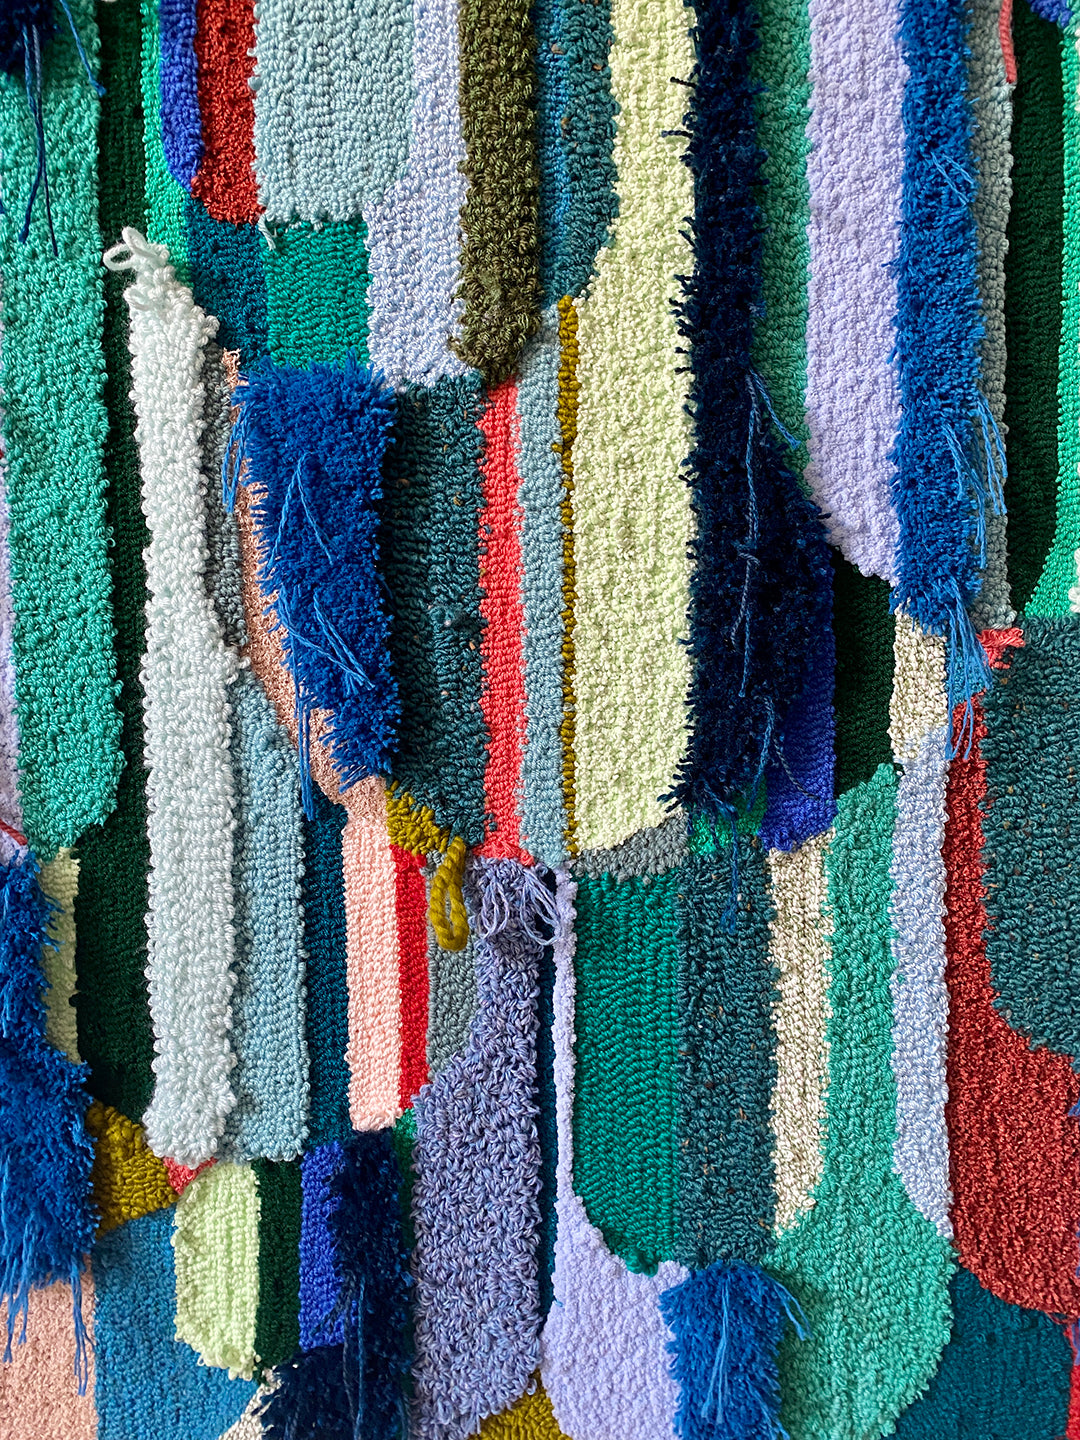 Trish Andersen fiber art detail greens, blues, coral